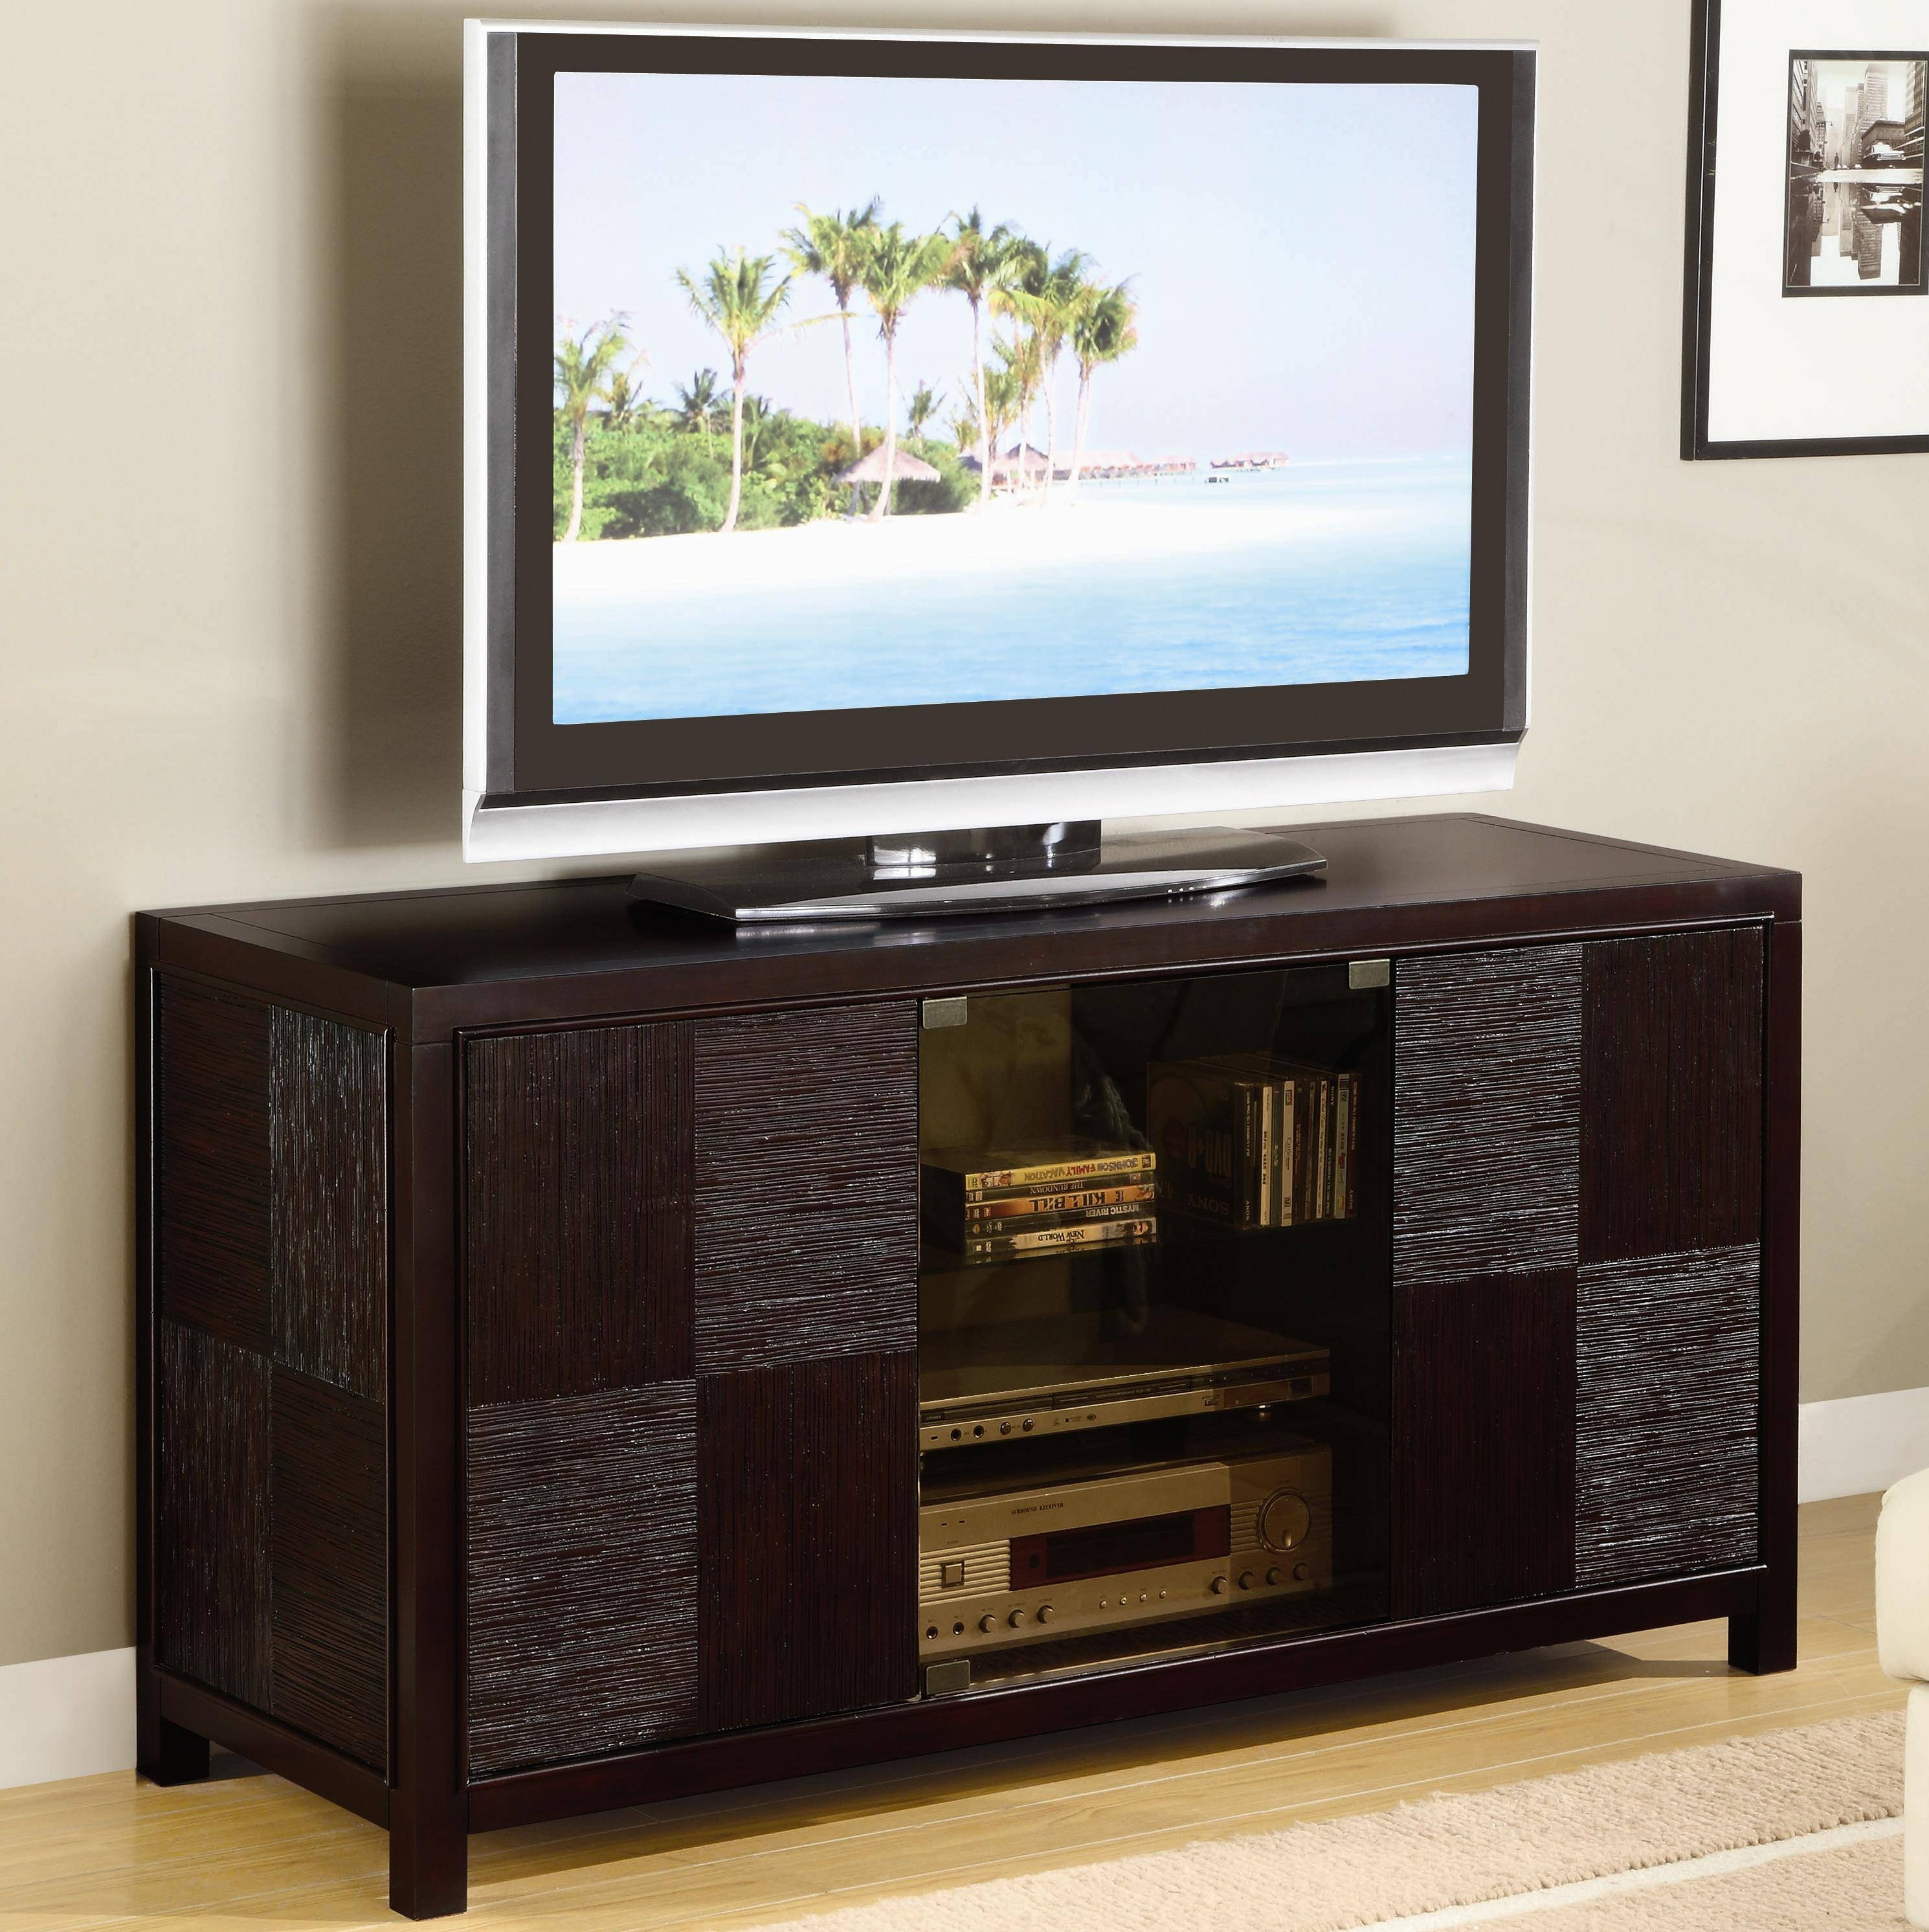 Contemporary Modern Tv Stand Console Table With Storage And Regarding Stands Image 3